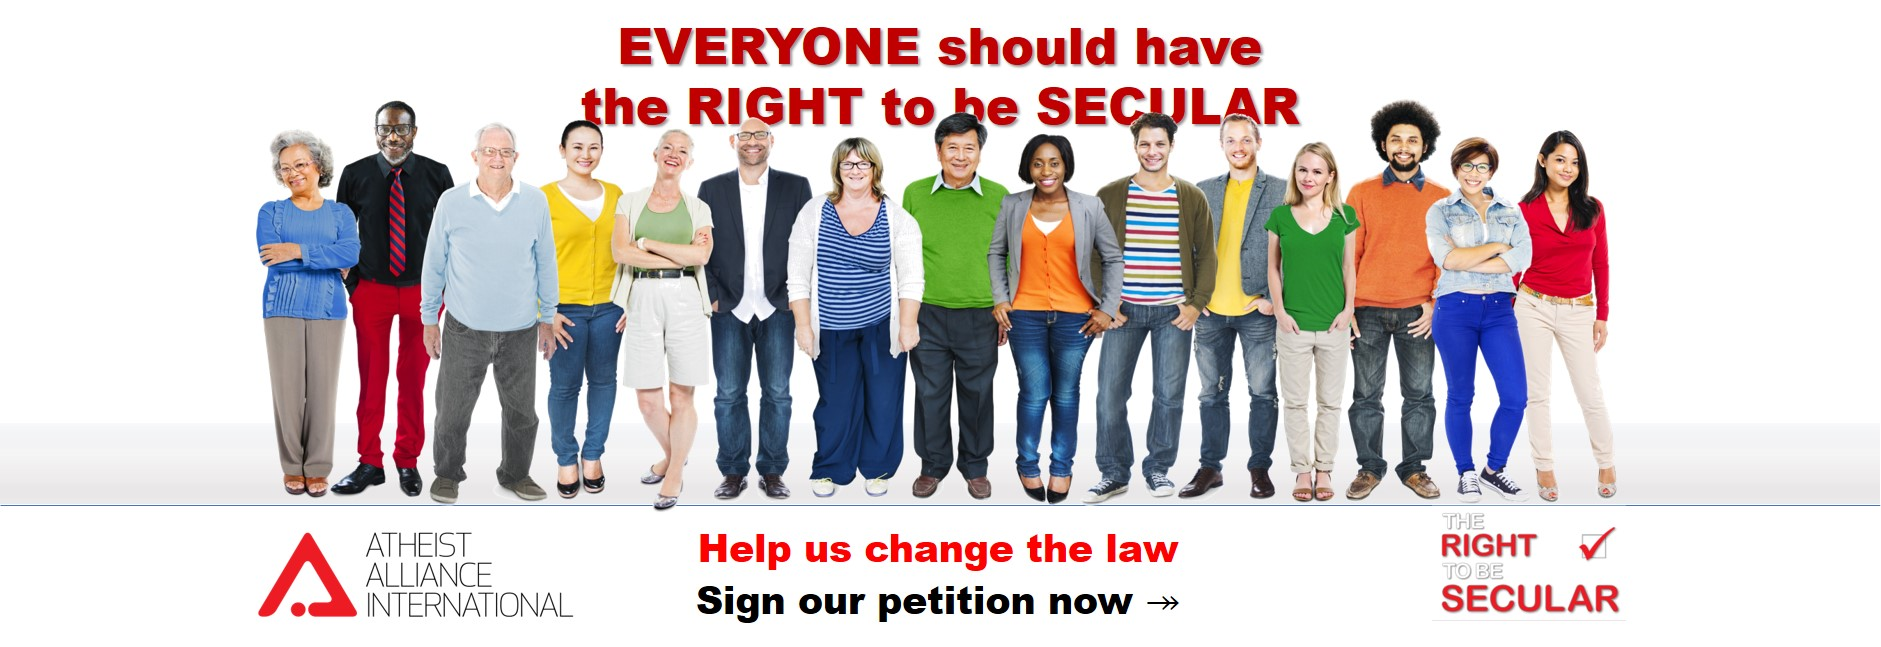 The Right to be Secular homepage graphic